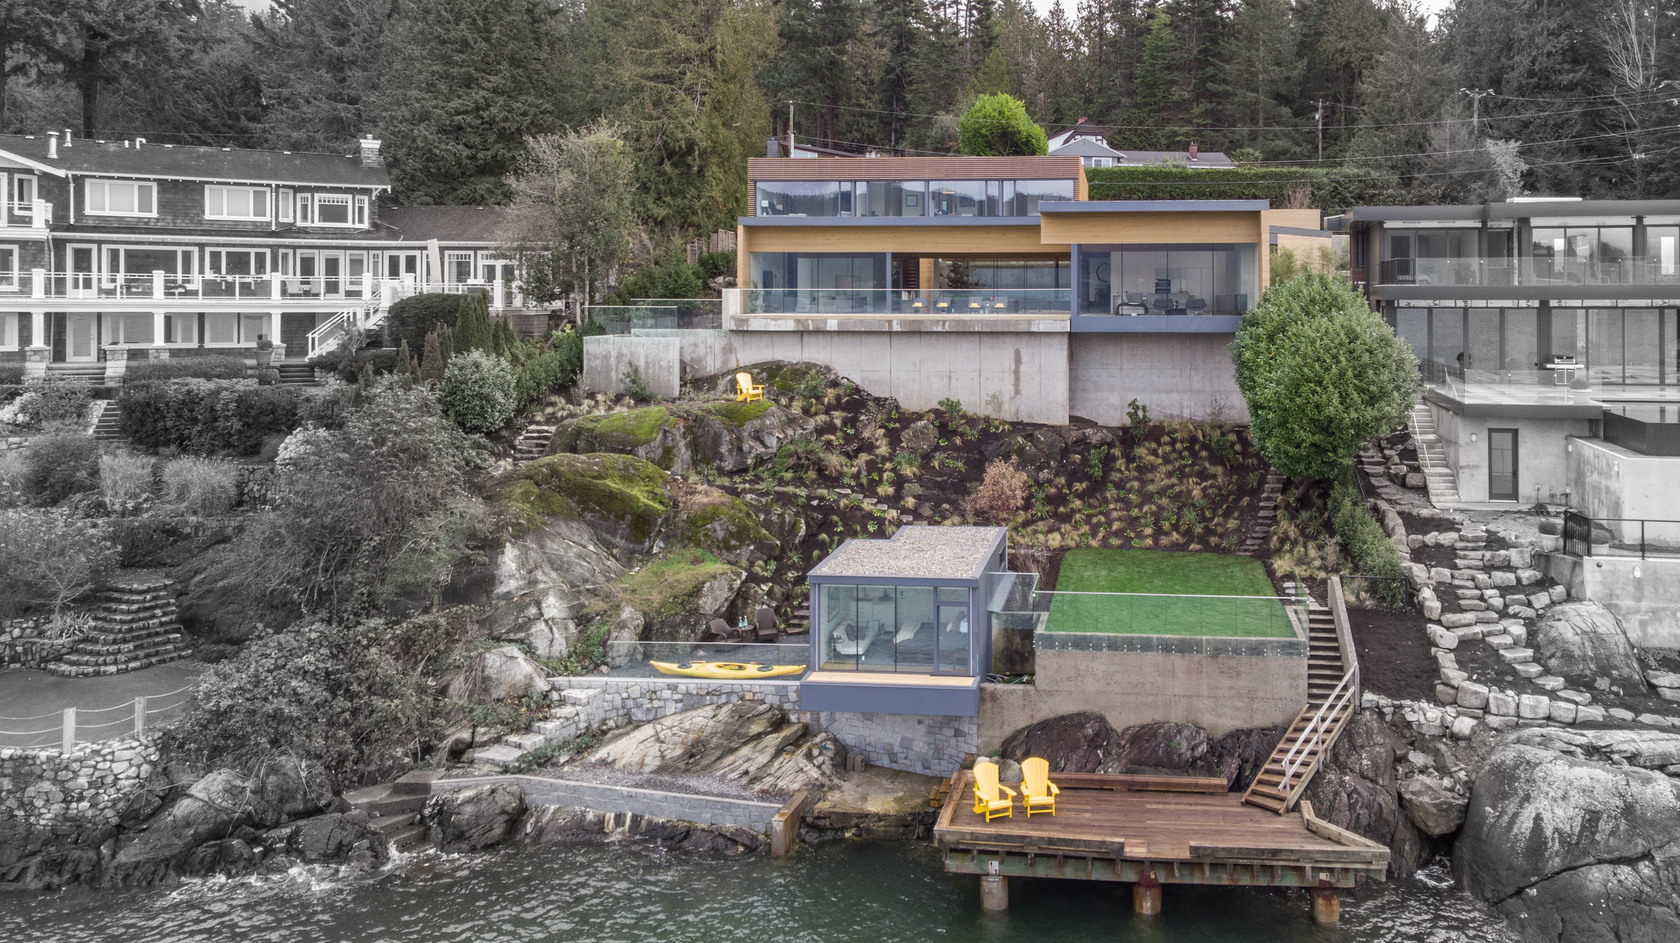 dji_0184-edit at 7270 Arbutus Road, Waterfront (Whytecliff), West Vancouver